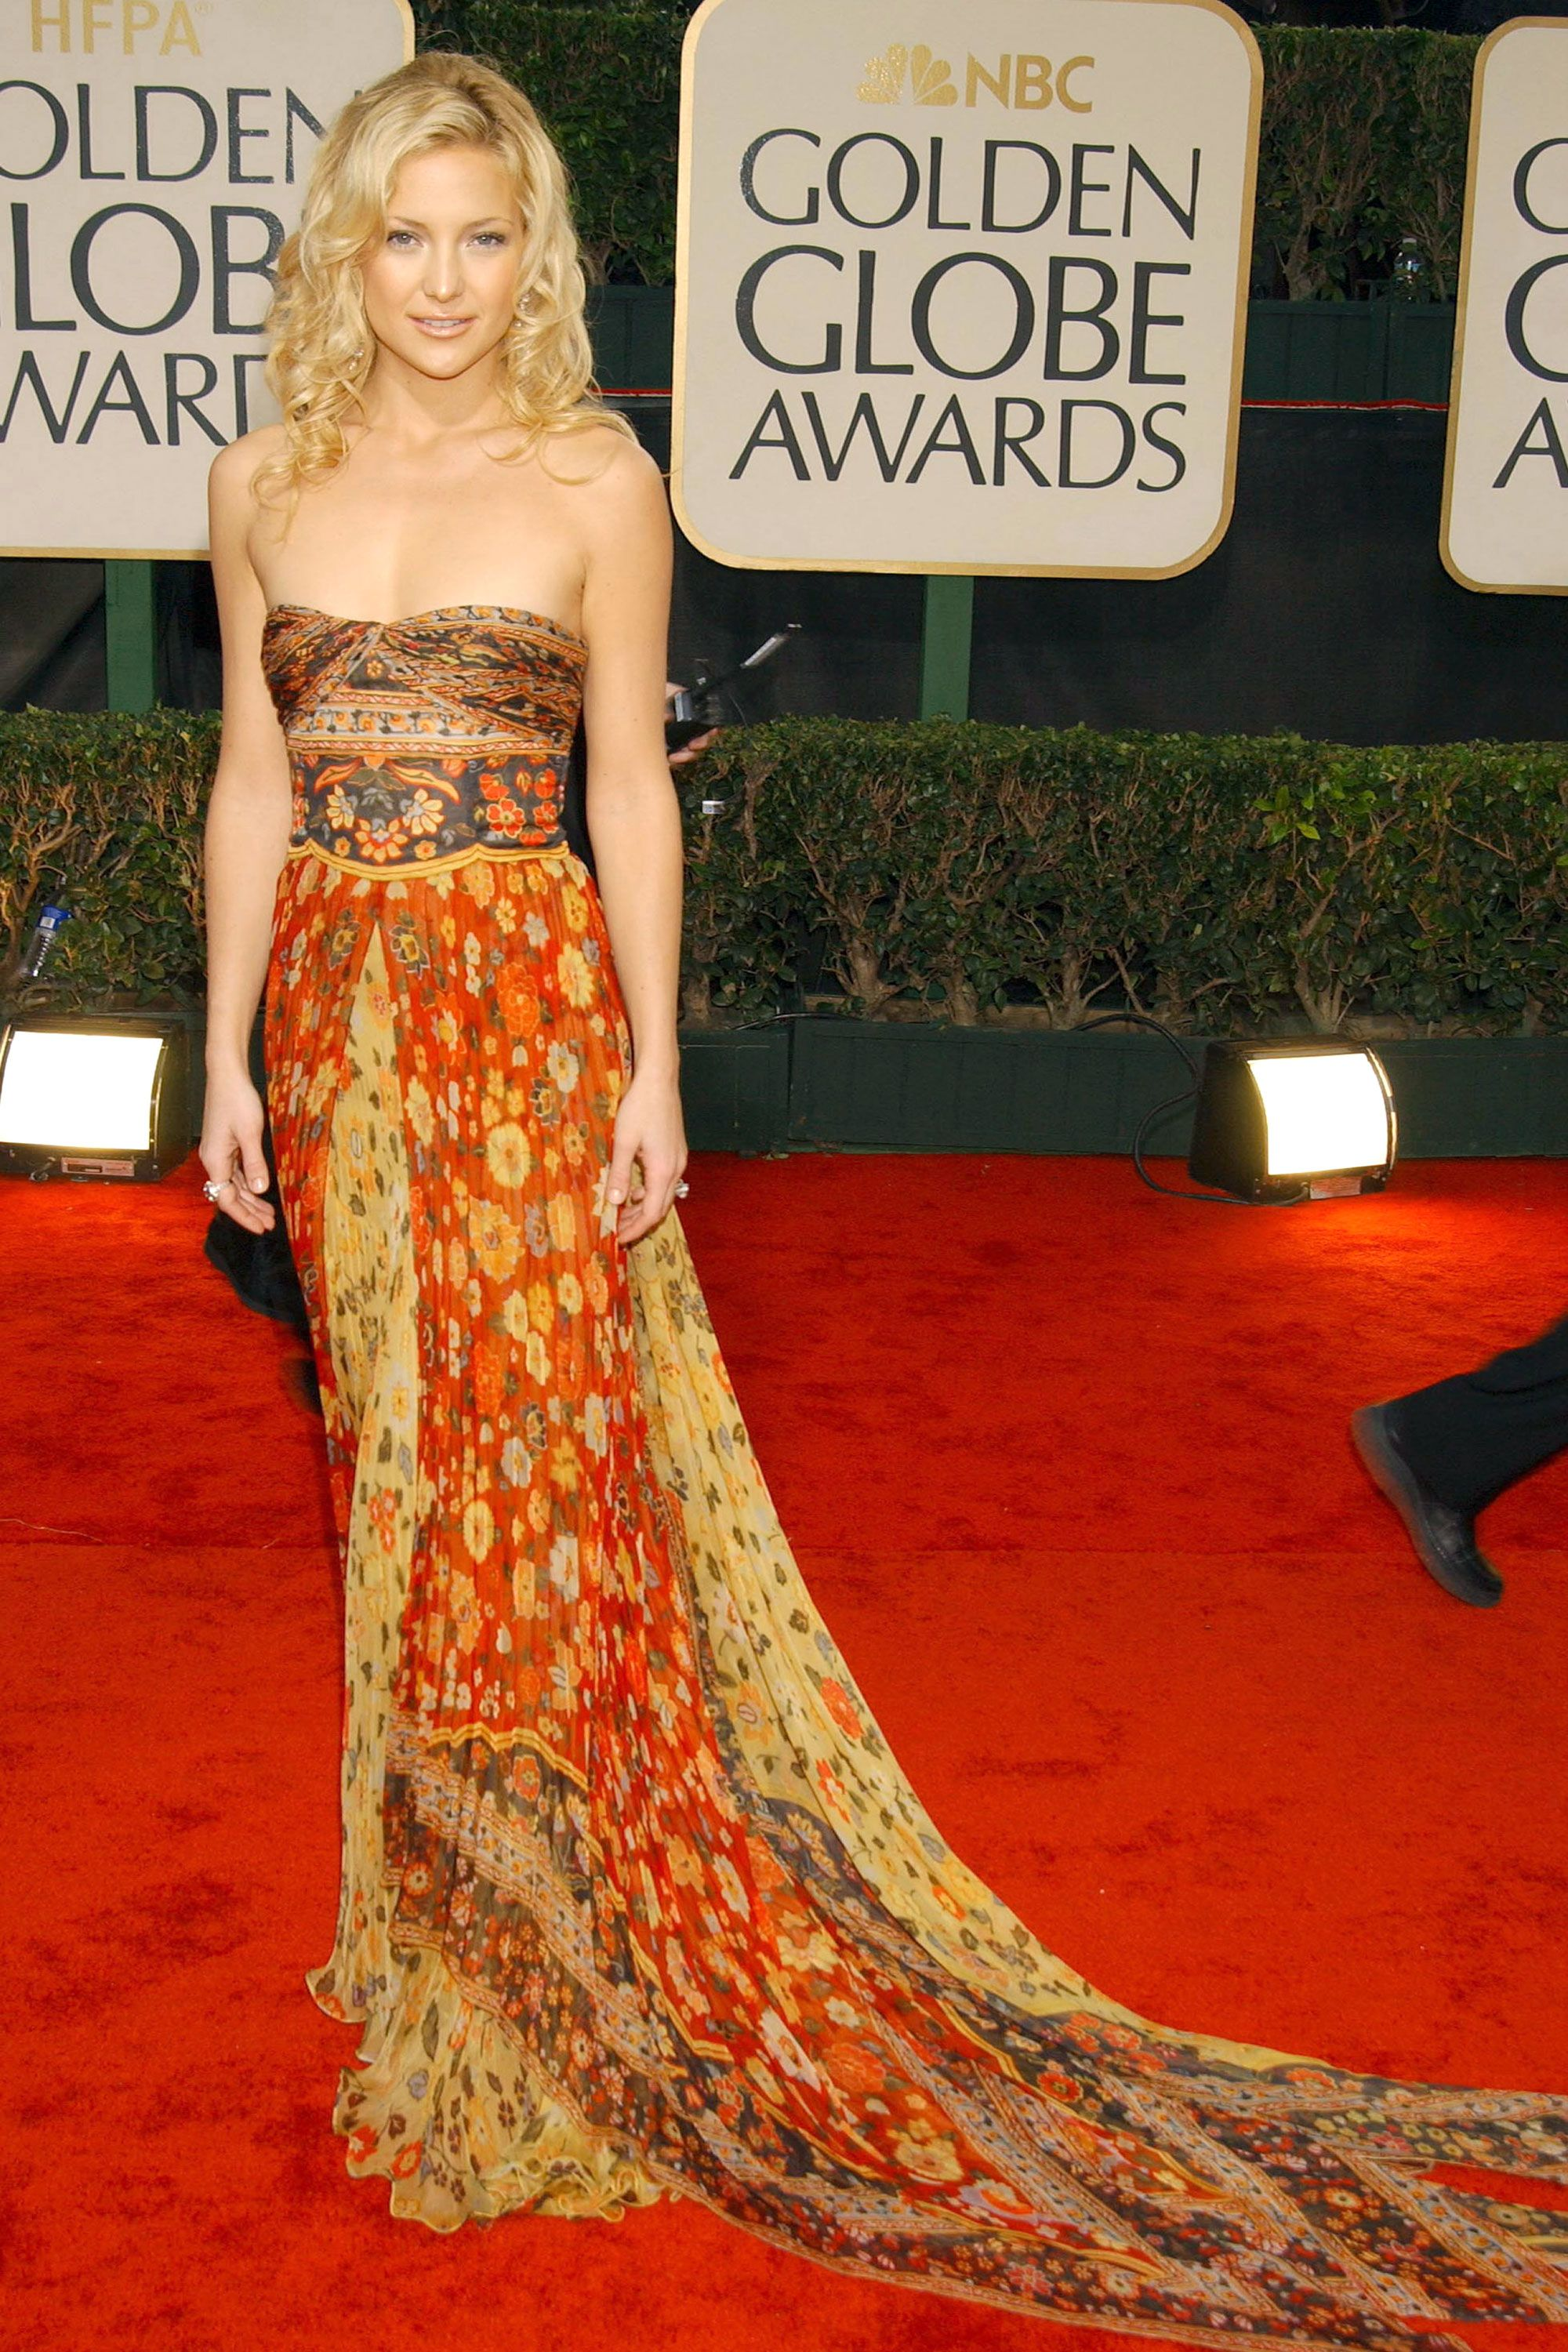 100 Best Red Carpet Dresses of All Time - Most Iconic Red Carpet Looks